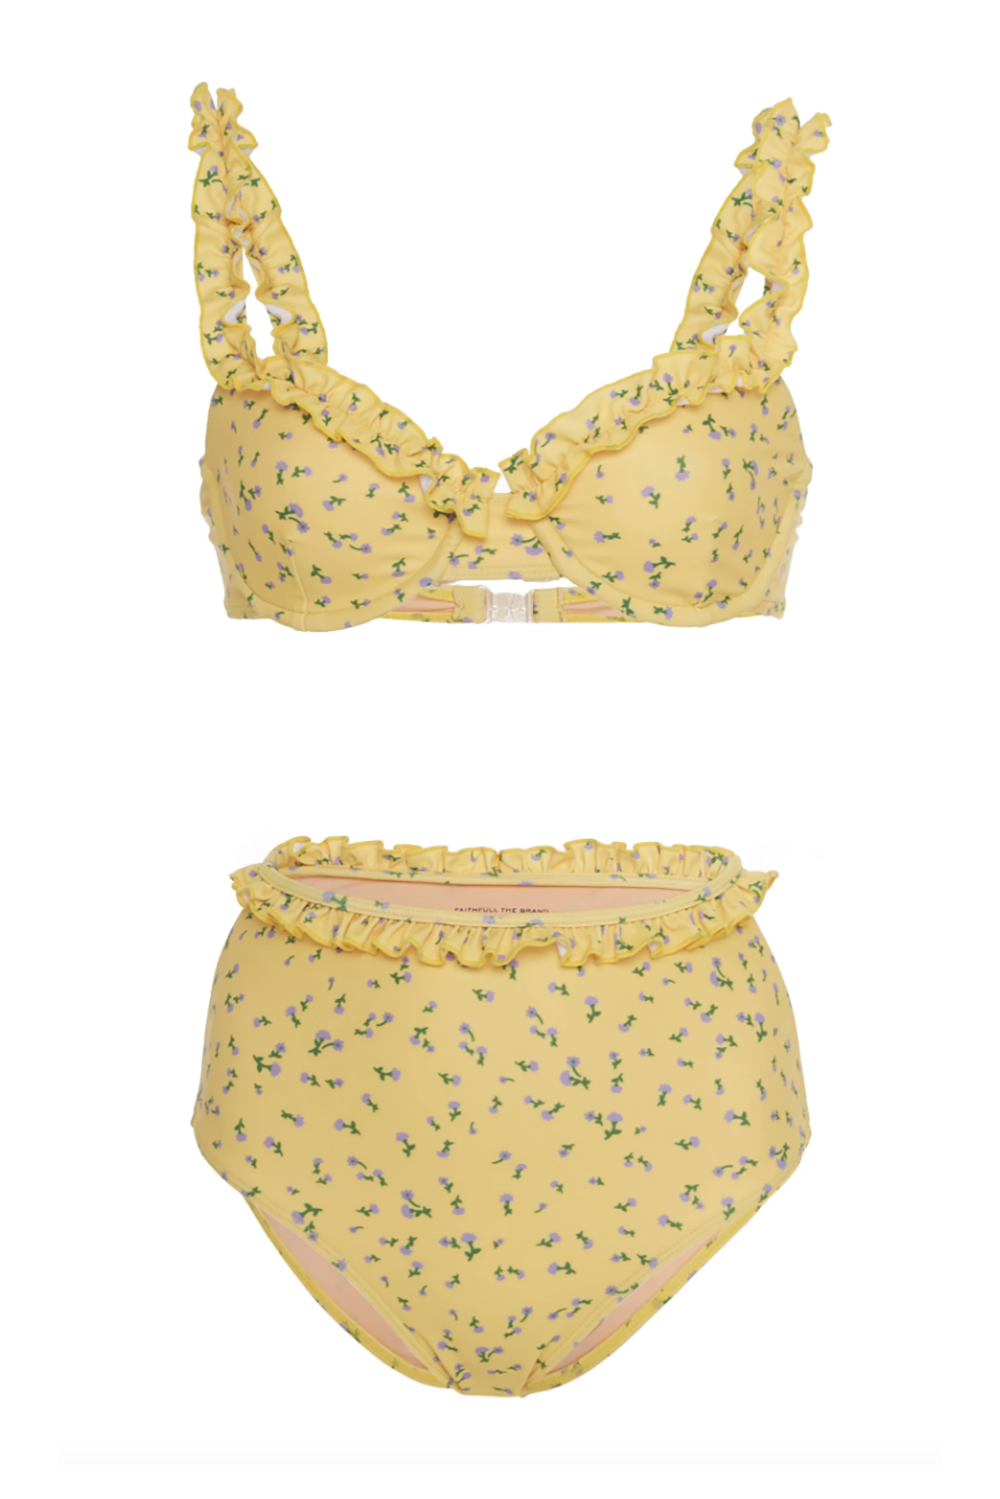 Best for Looking Cute Frida Floral Bikini Set Faithfull The Brand modaoperandi.com $180.00 SHOP IT The floral-loving gal in me appreciates this ultra feminine bikini so much. I love the small print coupled with the ruffle details on the cups, straps, and waistband.